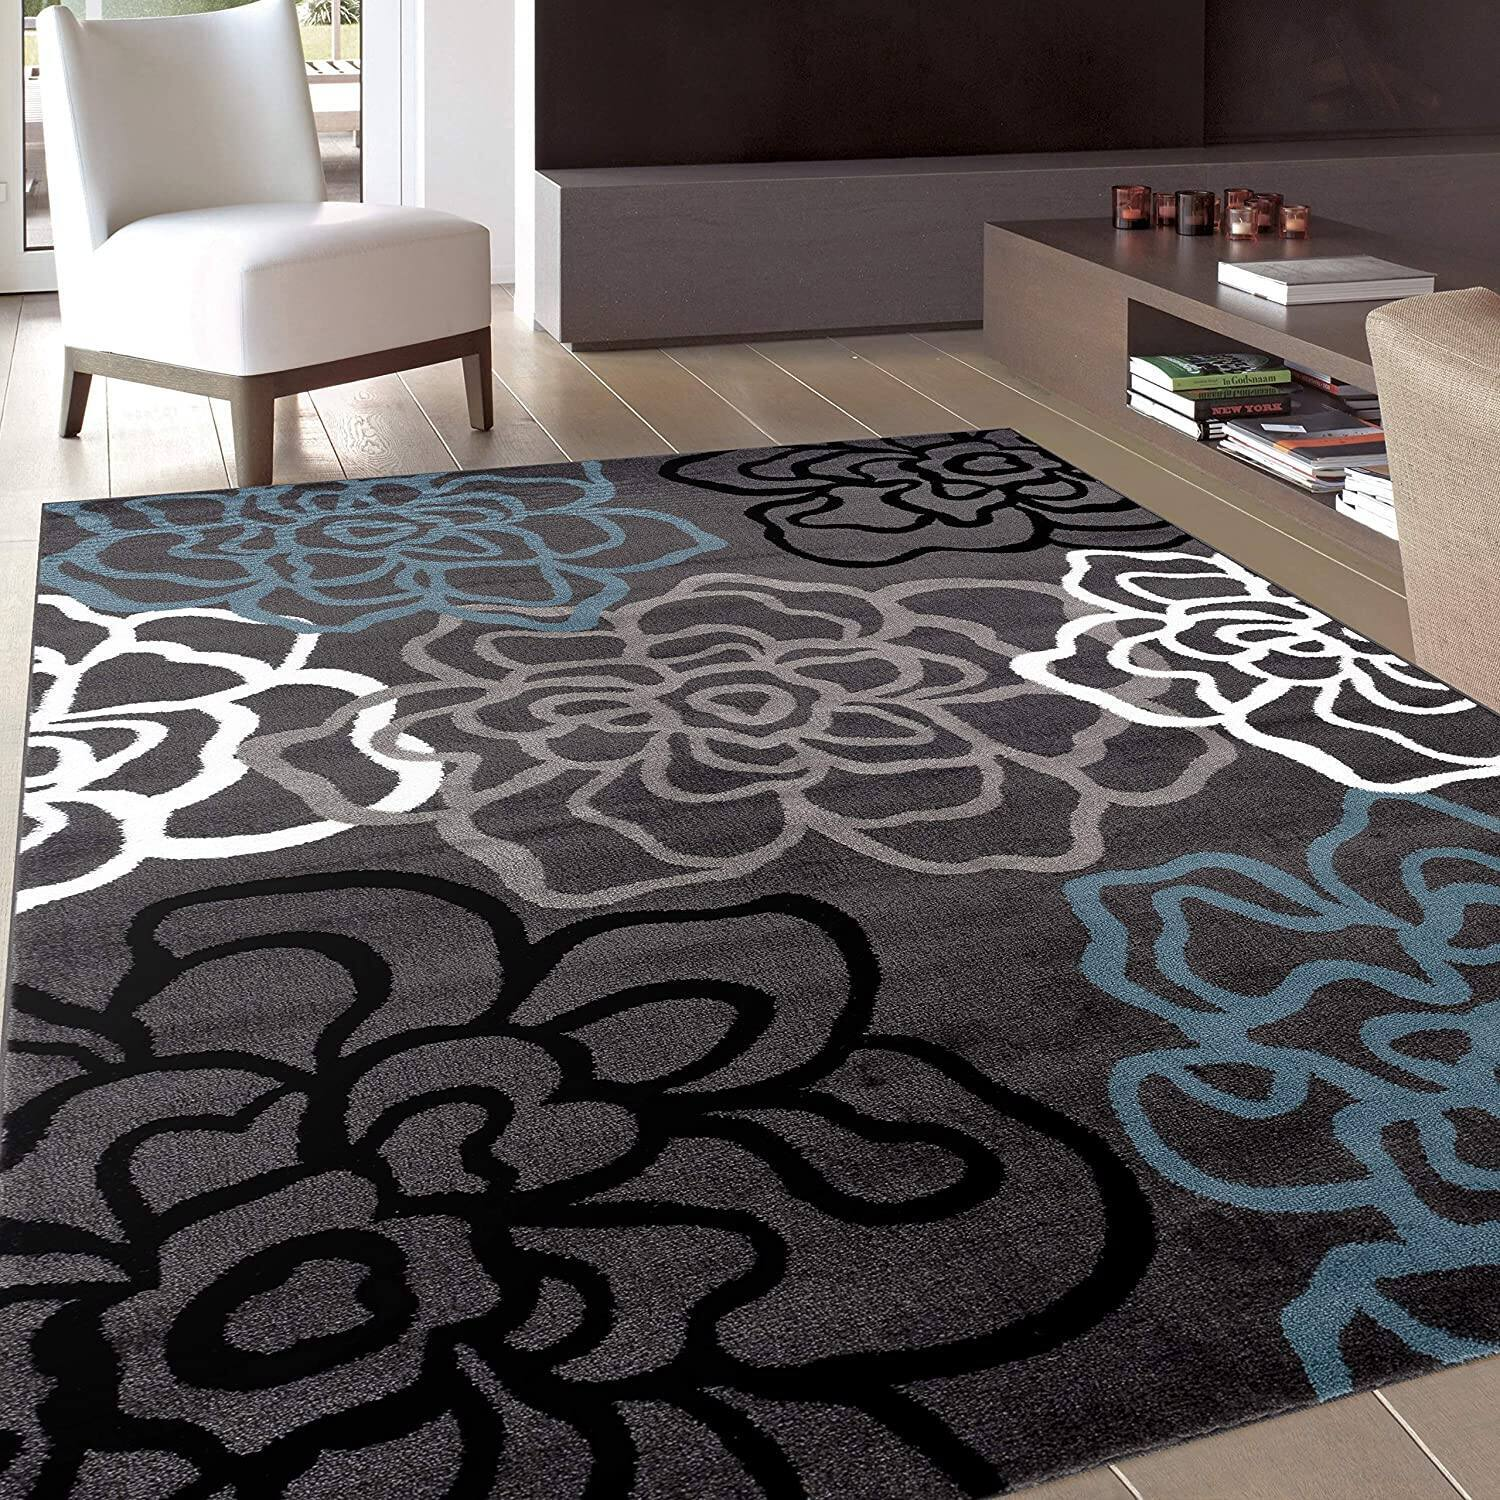 5x7 Modern Floral Gray Area Rug for $69.90 + Free Shipping